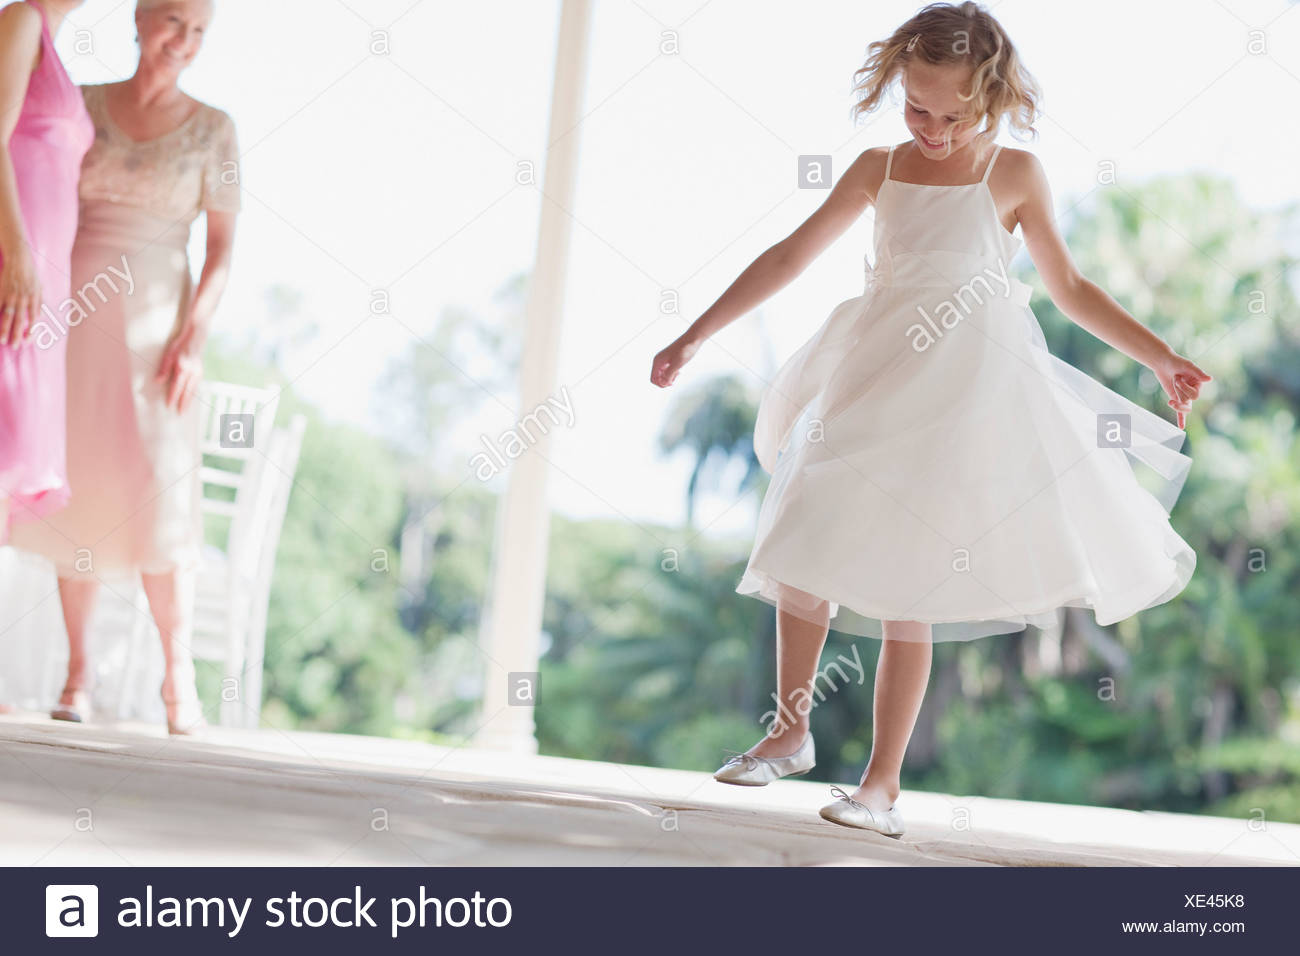 Flower girl playing at wedding reception - Stock Image